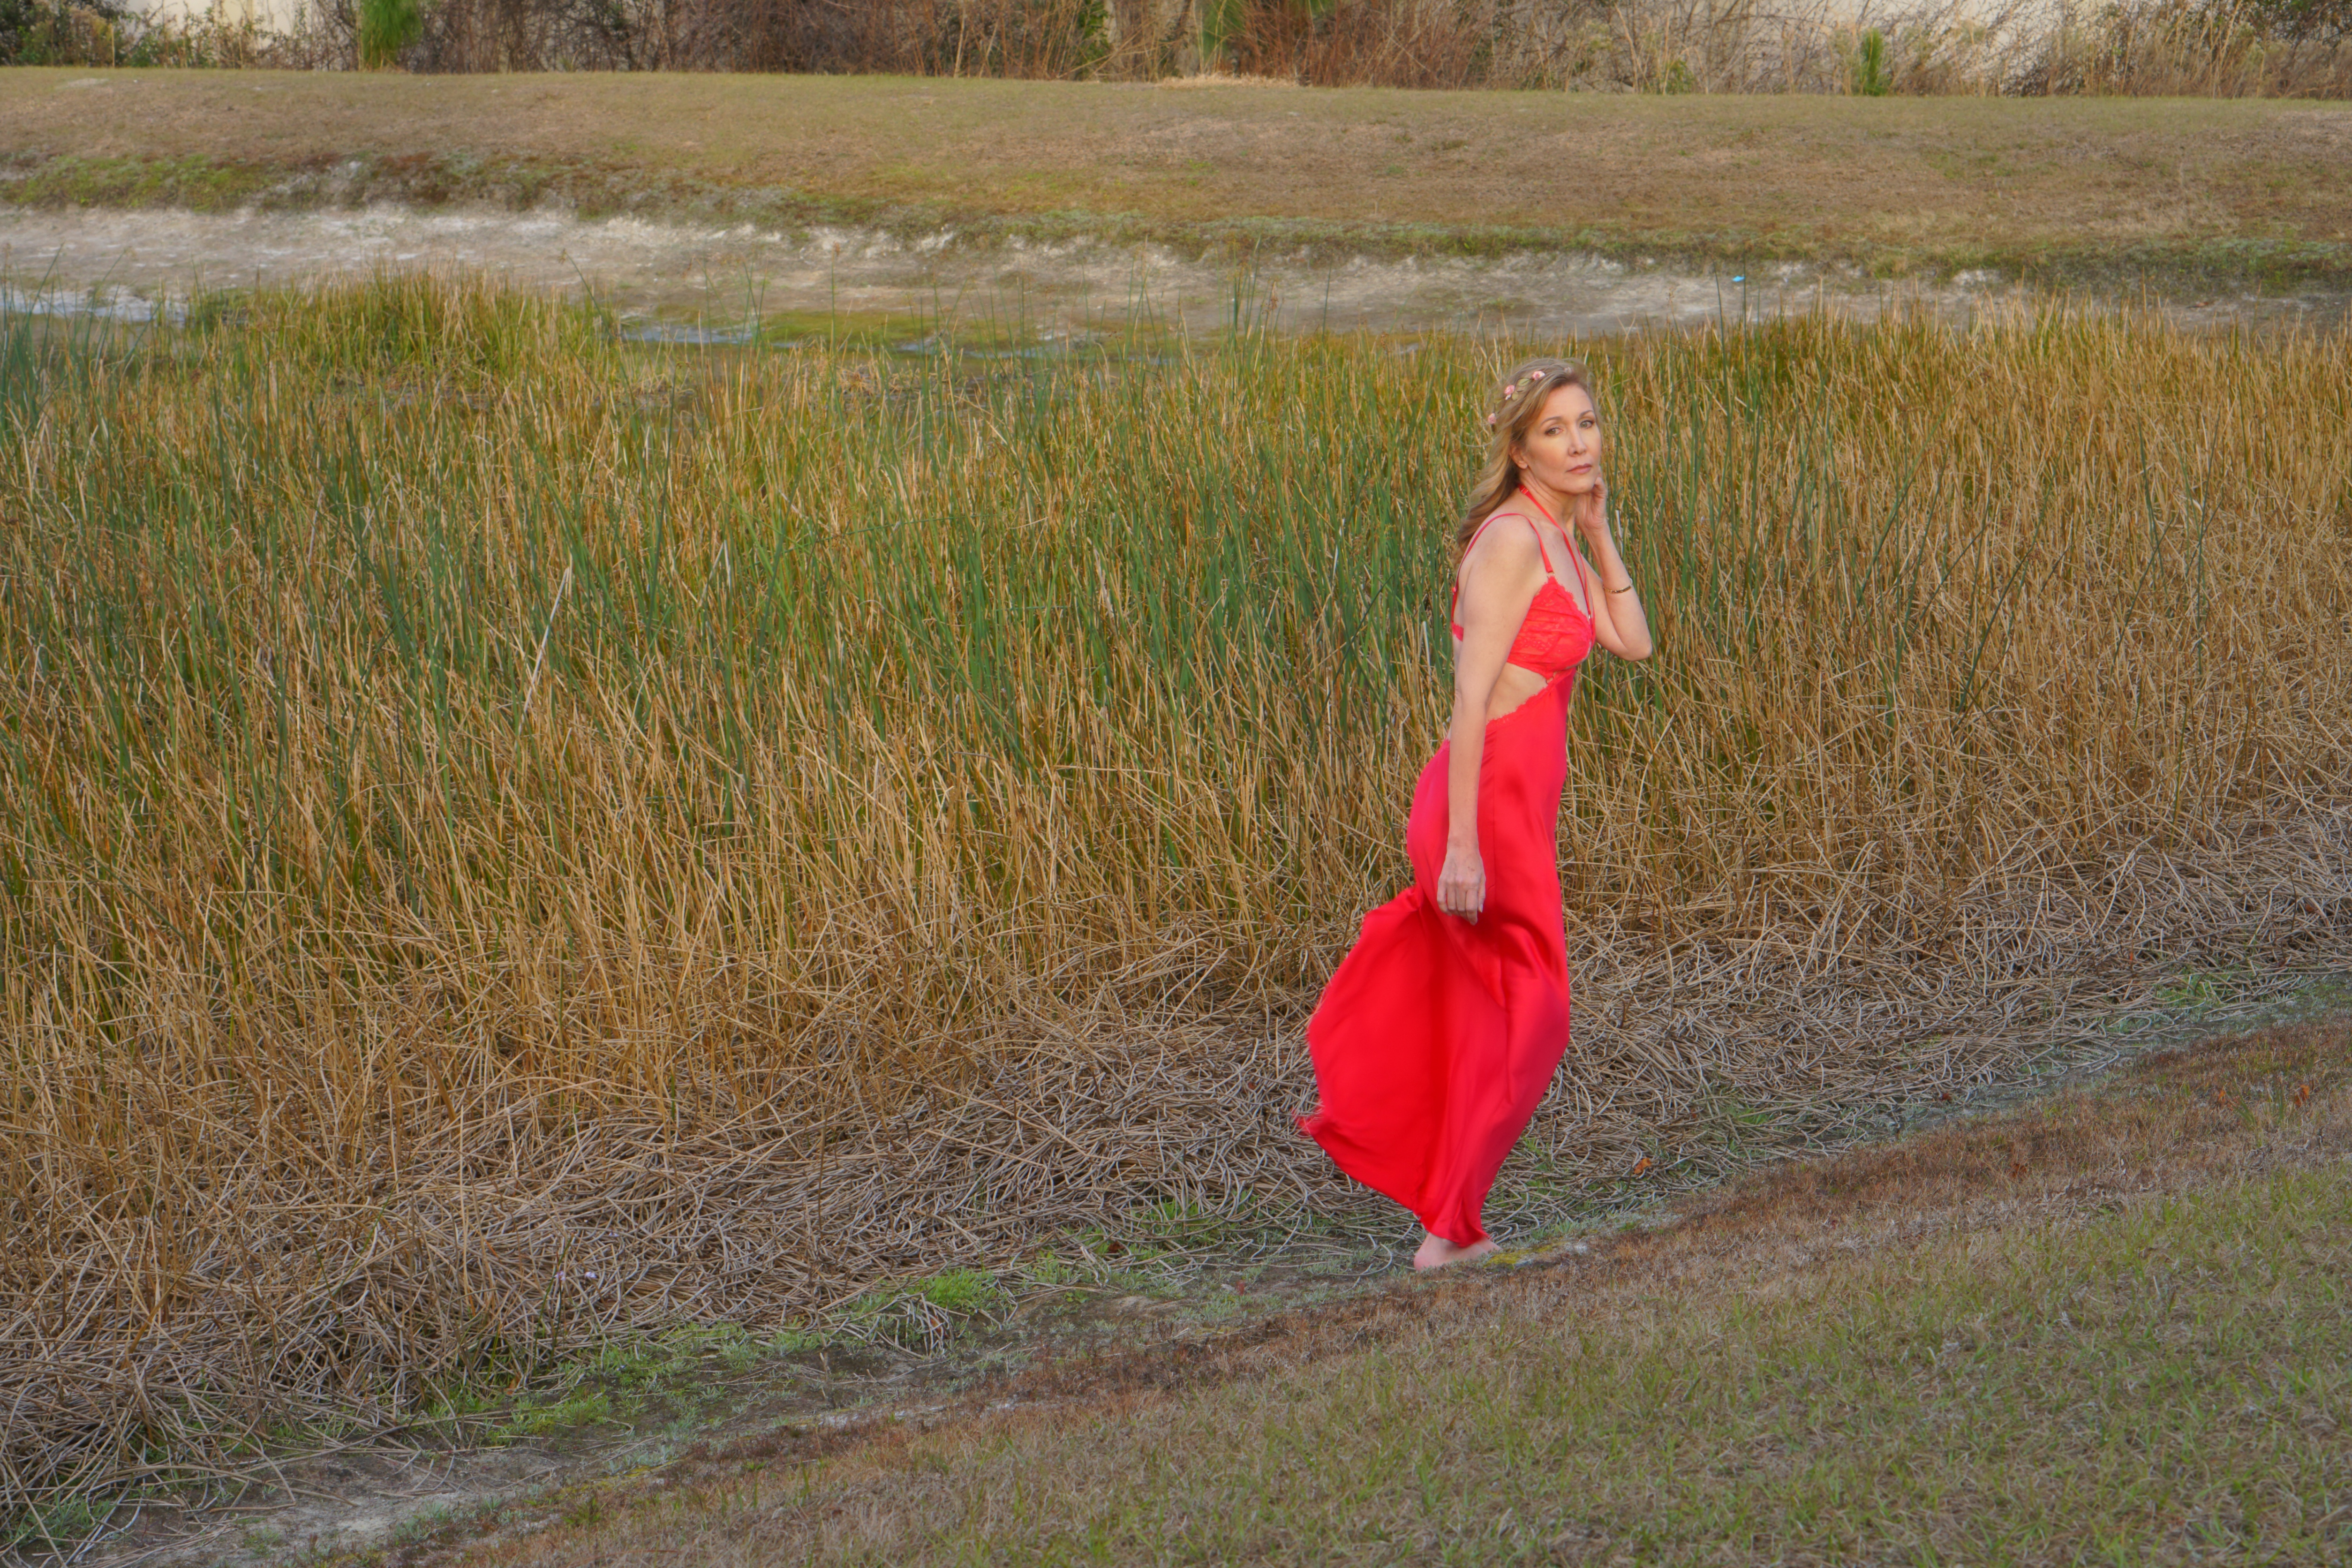 Nina Bandoni sharing a journey wearing red dress beside the grass